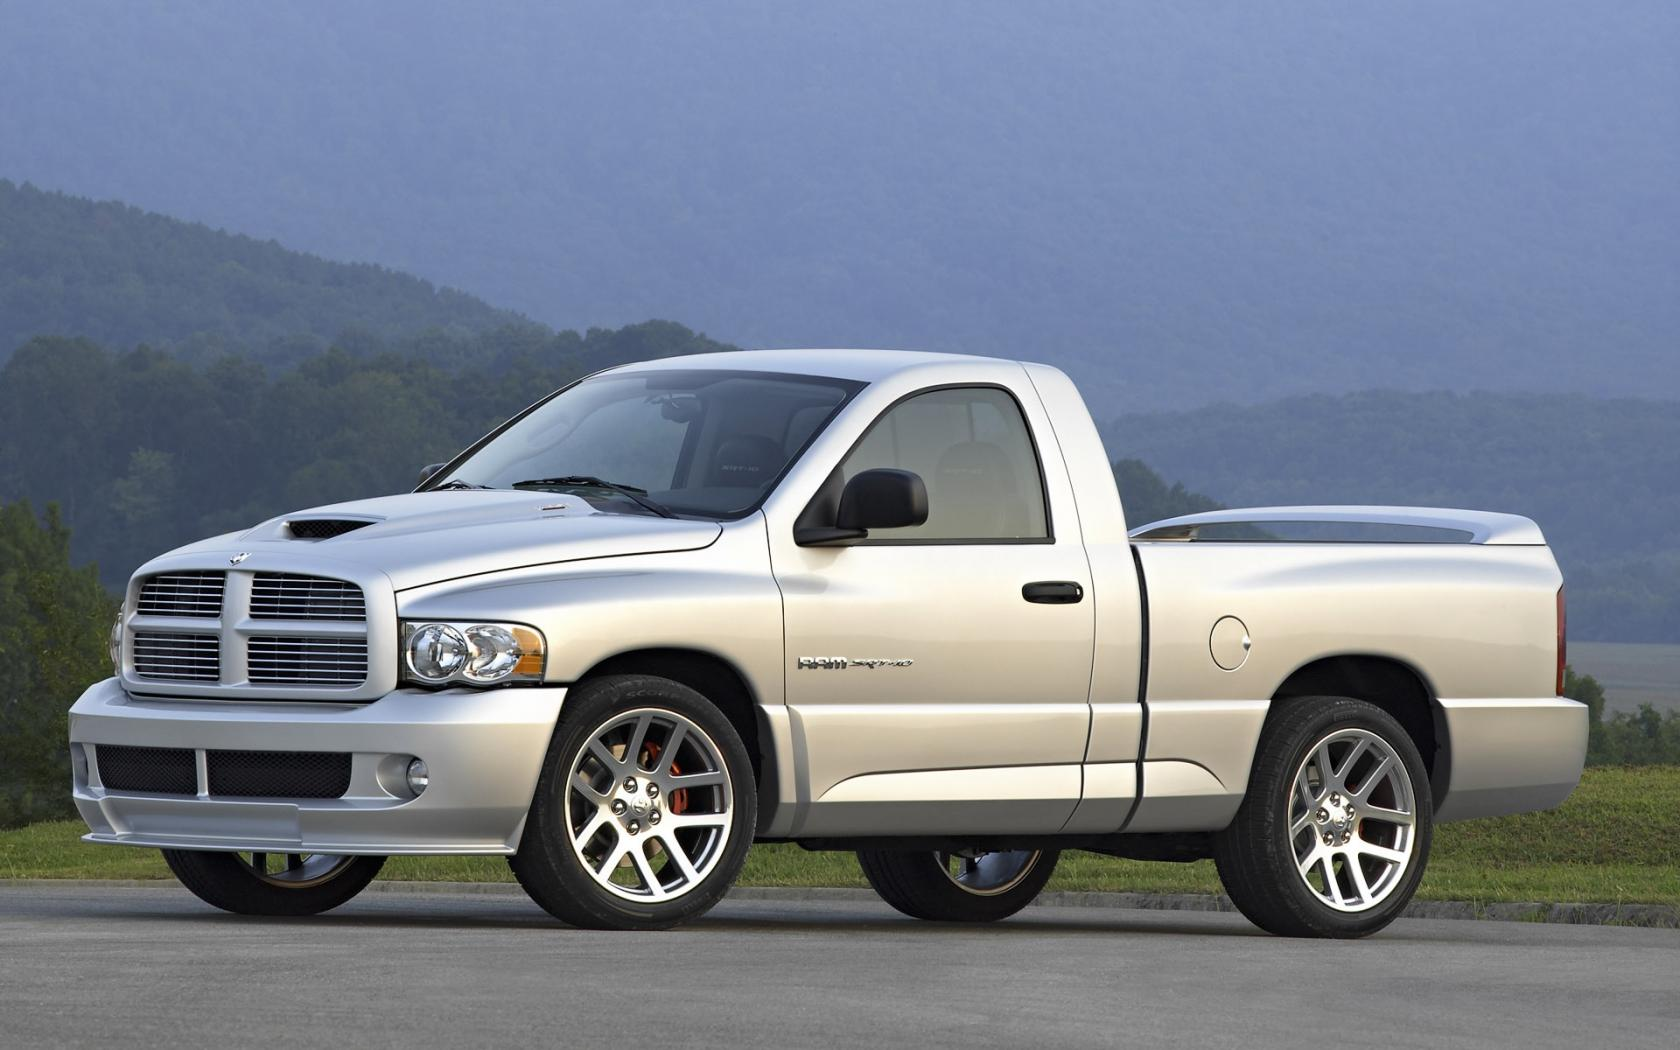 2004 Dodge Ram Srt 10 Side Angle 1680x1050